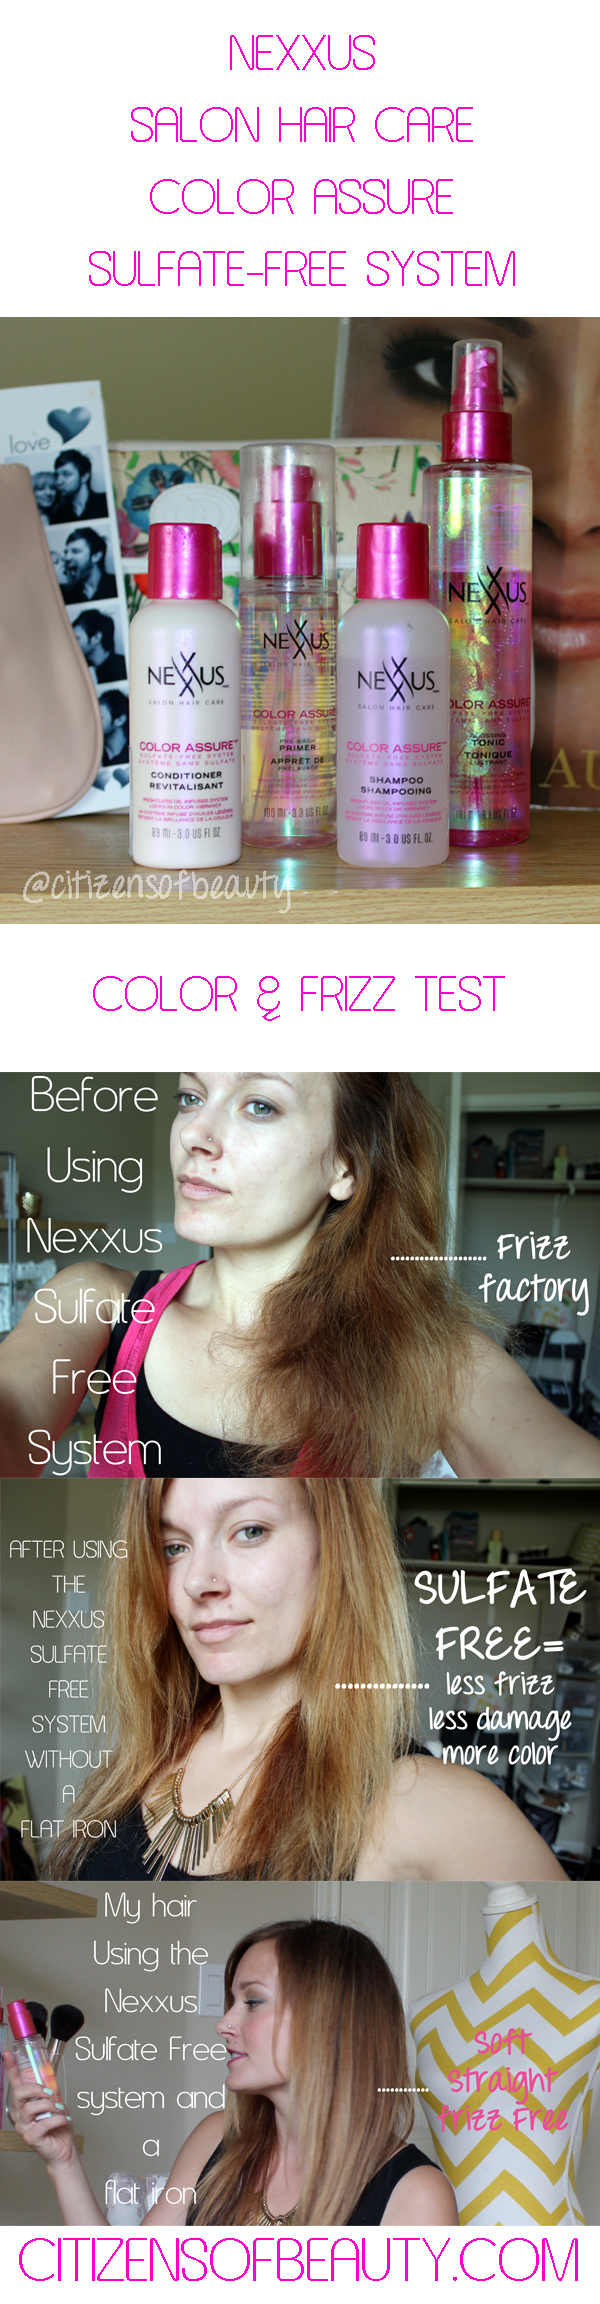 Nexxus Color Assure SulfateFree Hair Care System Review